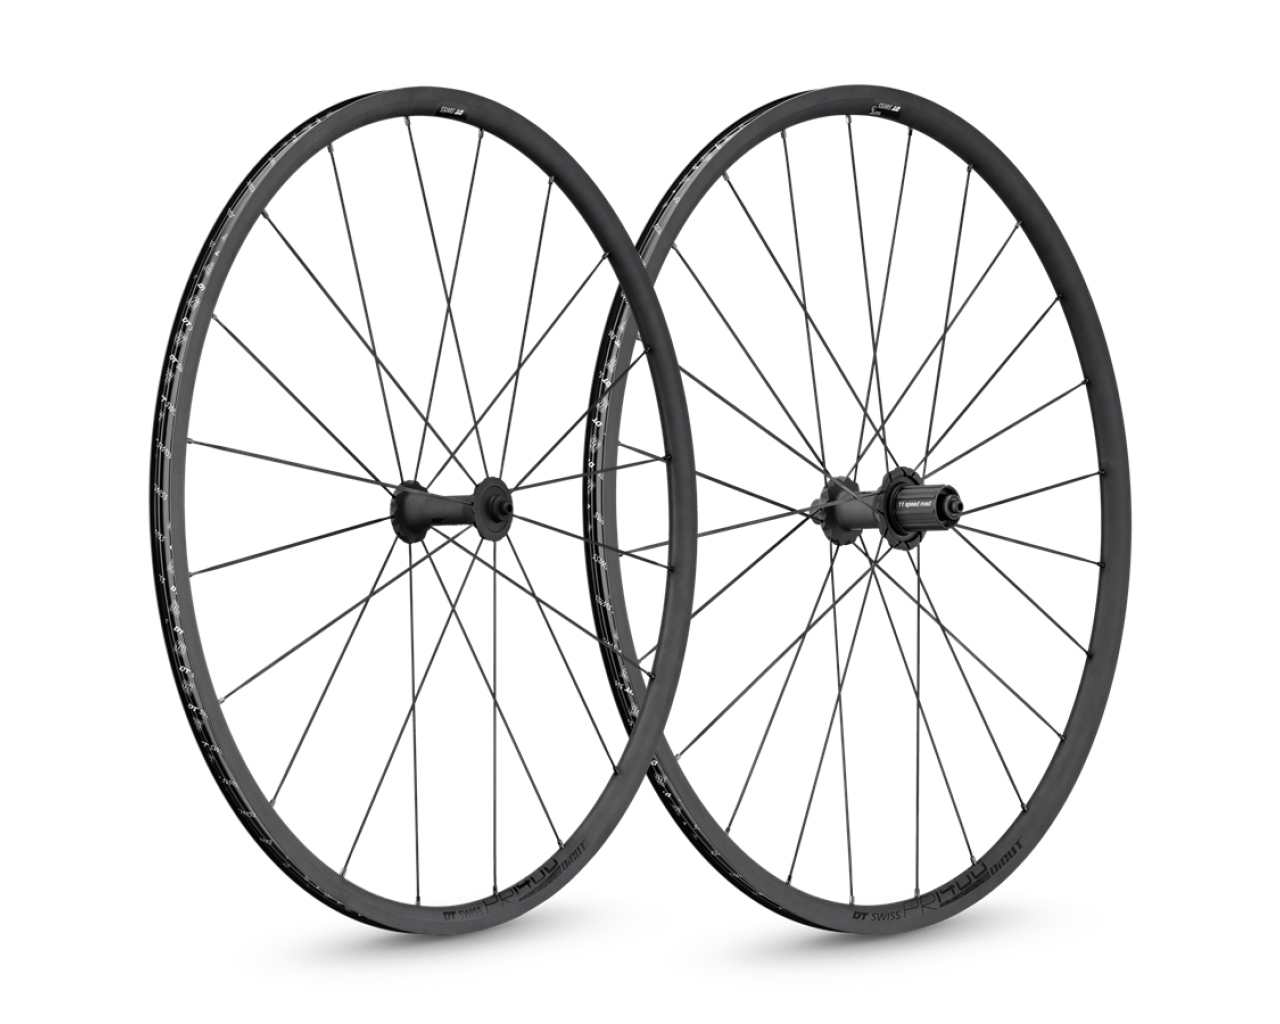 29364_dt_swiss_pr1400_dicut_oxic_clincher_road_wheels.jpg